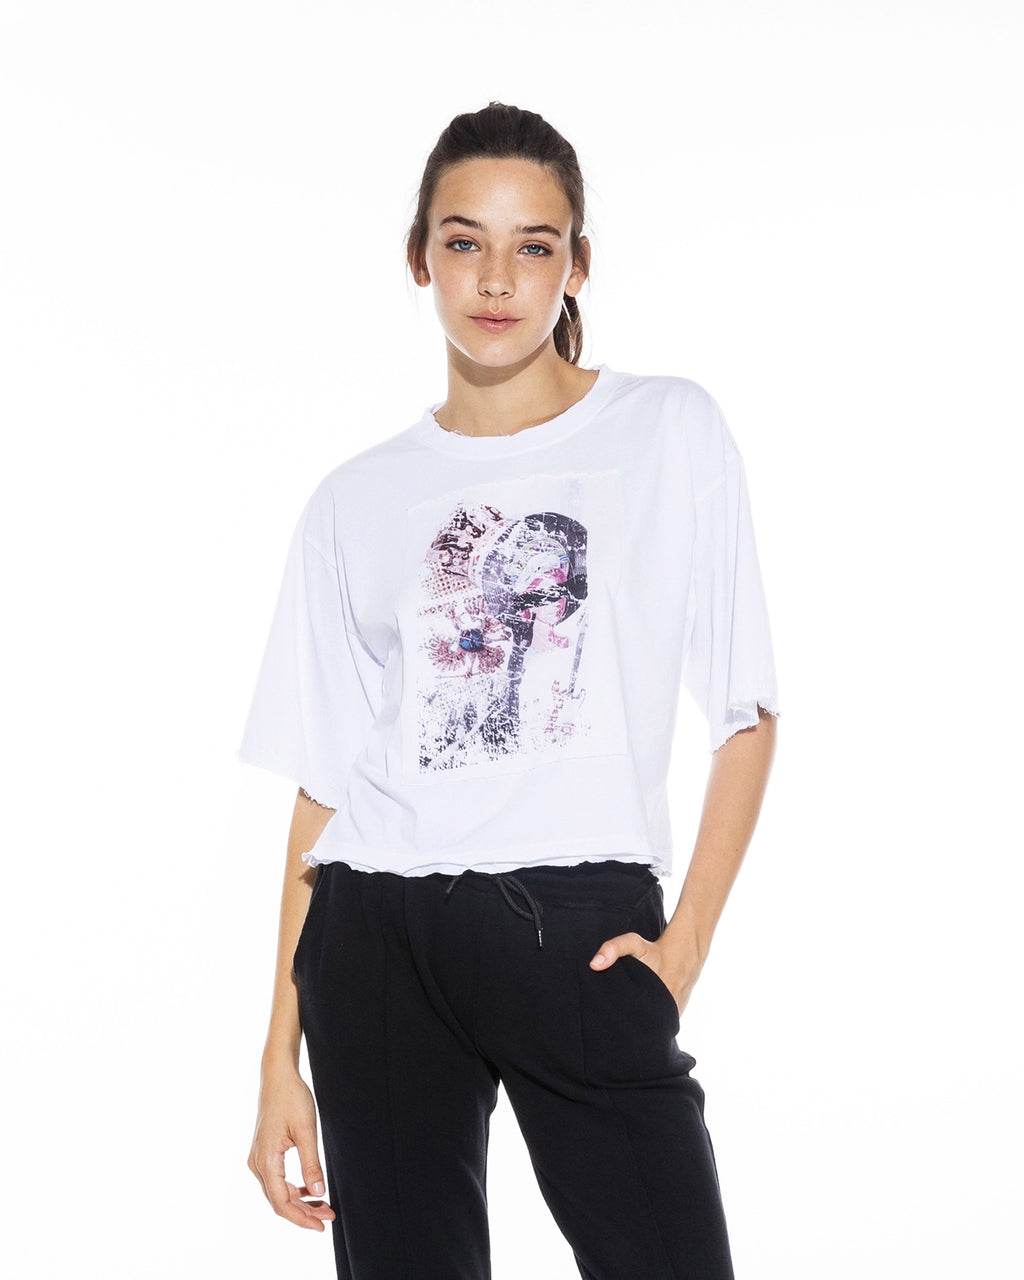 CT18626 - ROCK & ROYALTY T-SHIRT - tops - shirts - This cropped graphic tee is printed with our Fall 2020 moodboard. Featuring a portrait of Queen Elizabeth II and other royal motifs, this soft 100% cotton printed tee will elevate any pair of jeans. Add 1 line break Stylist tip: Throw this top on with your favorite pair of jeans and a blazer for a laidback but cool look.